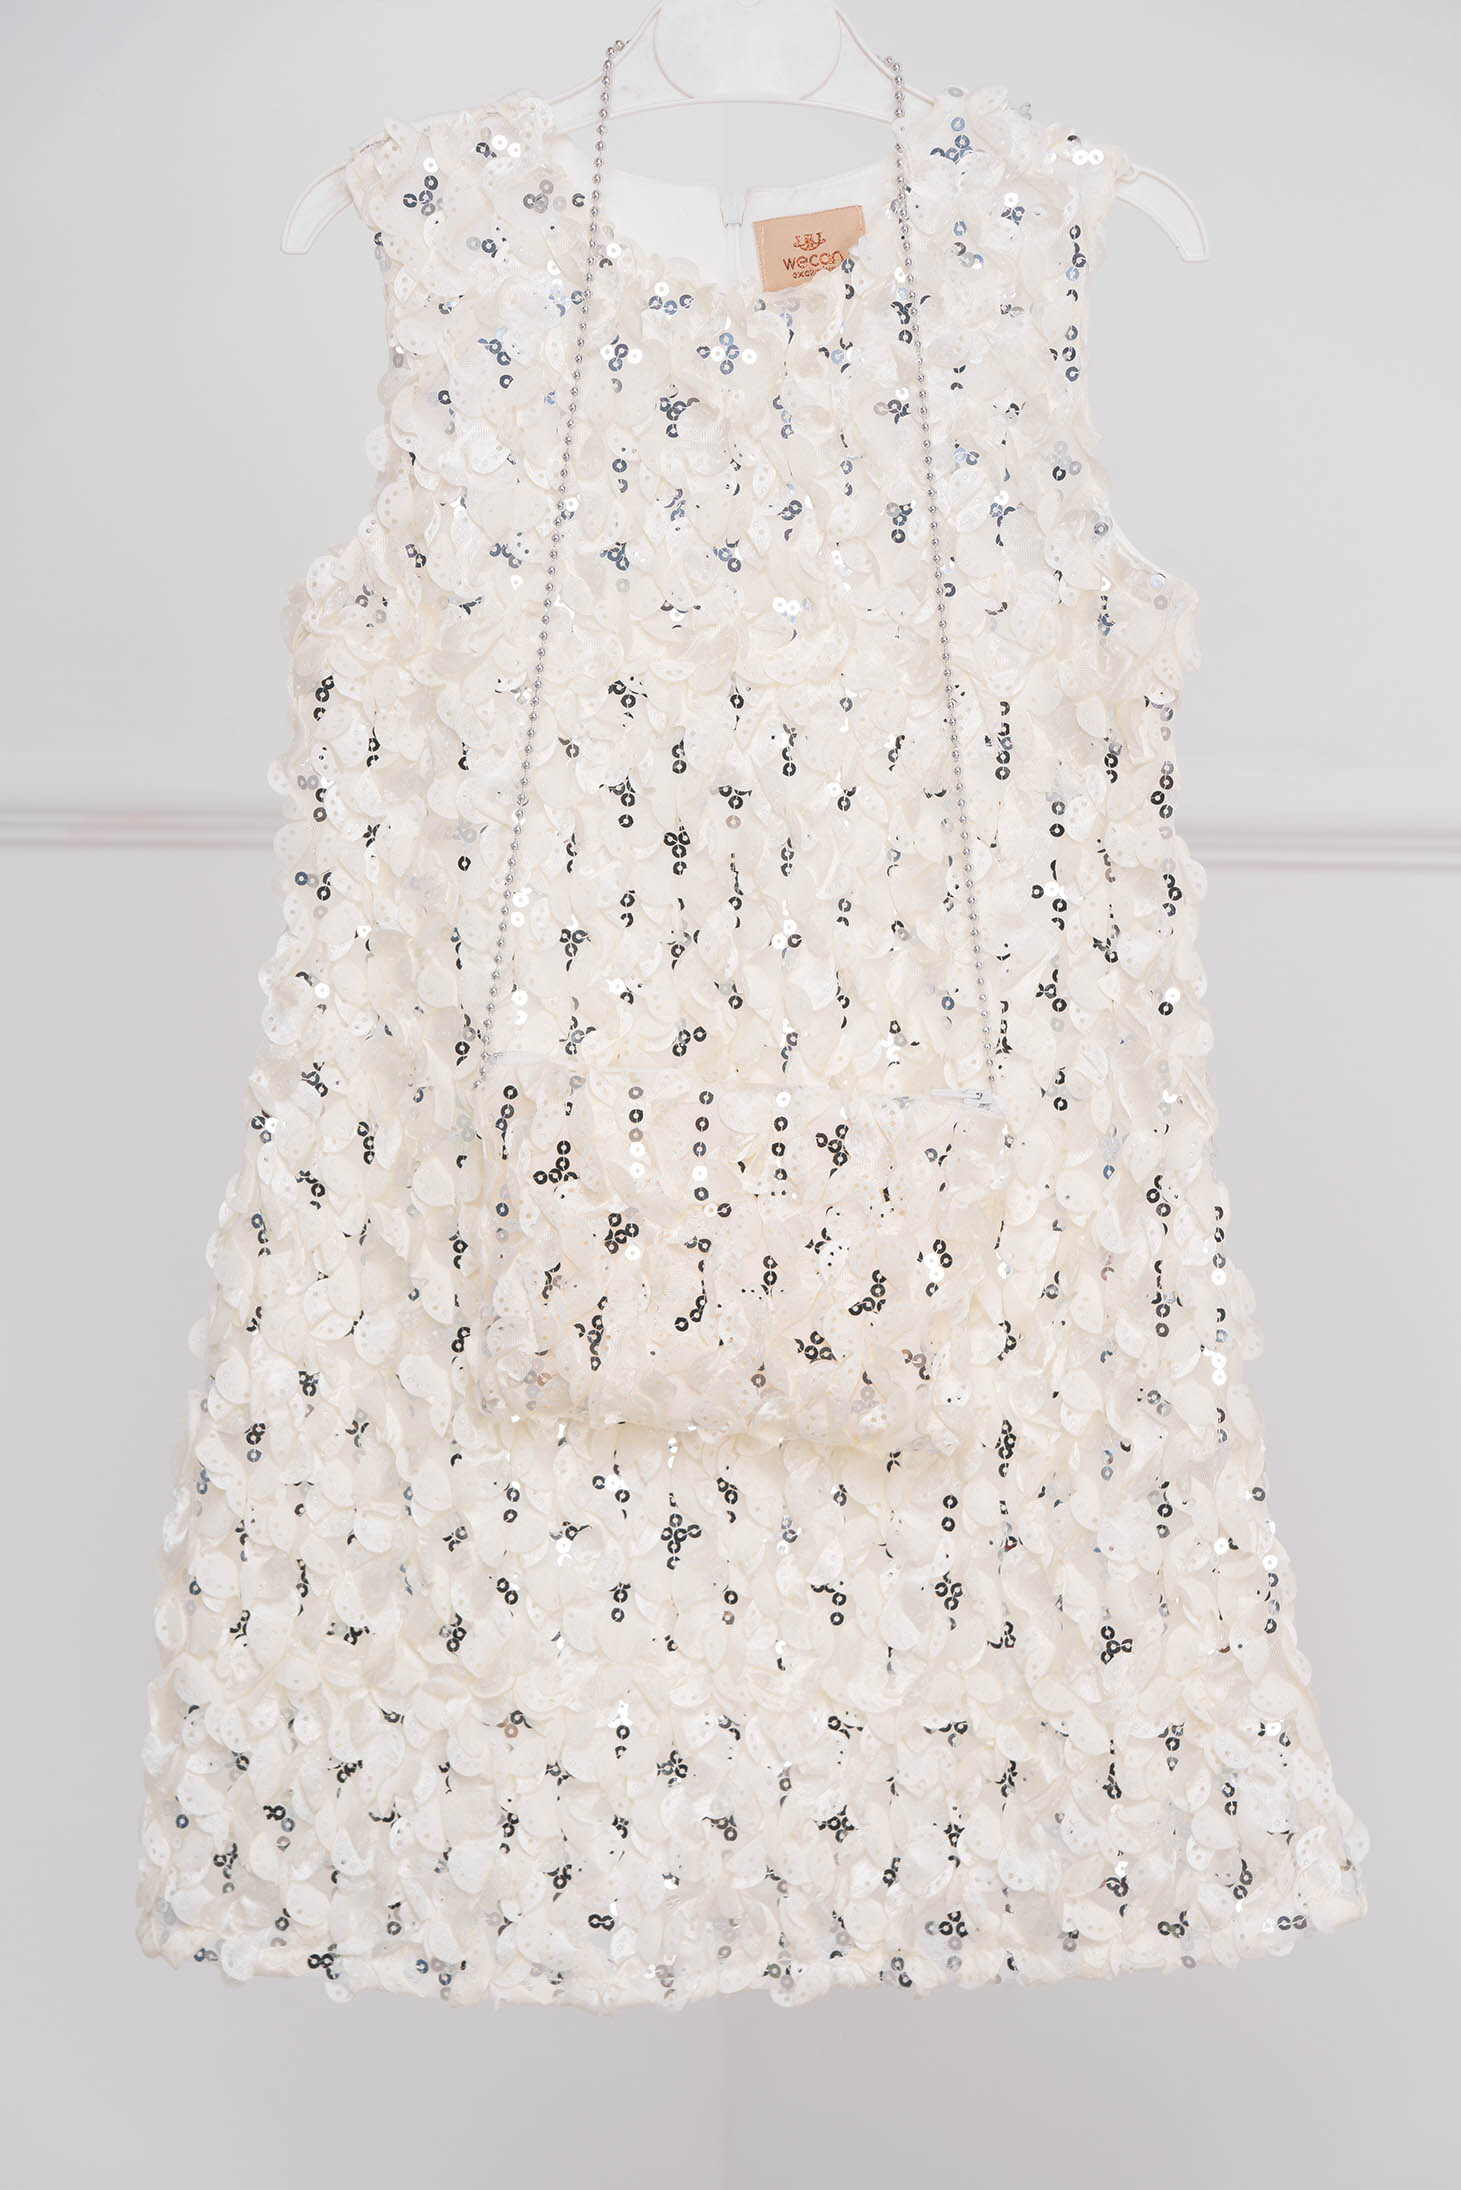 White dress occasional with sequin embellished details with 3d effect sleeveless